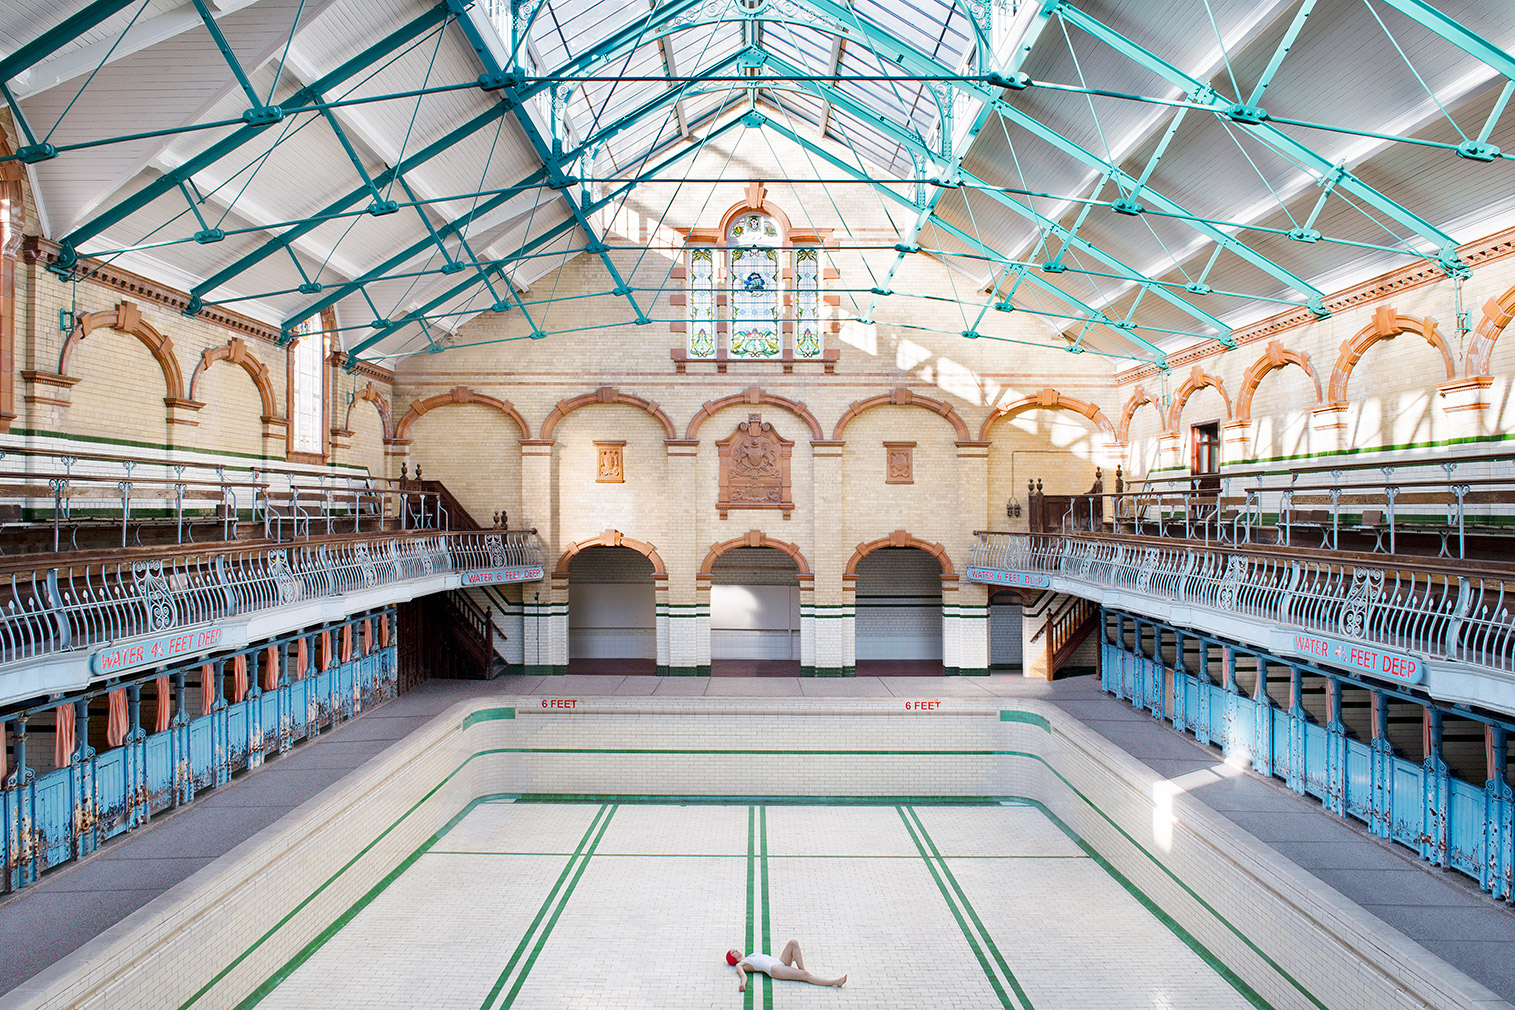 'Victoria Baths in Manchester'. Photography: Soo Burnell